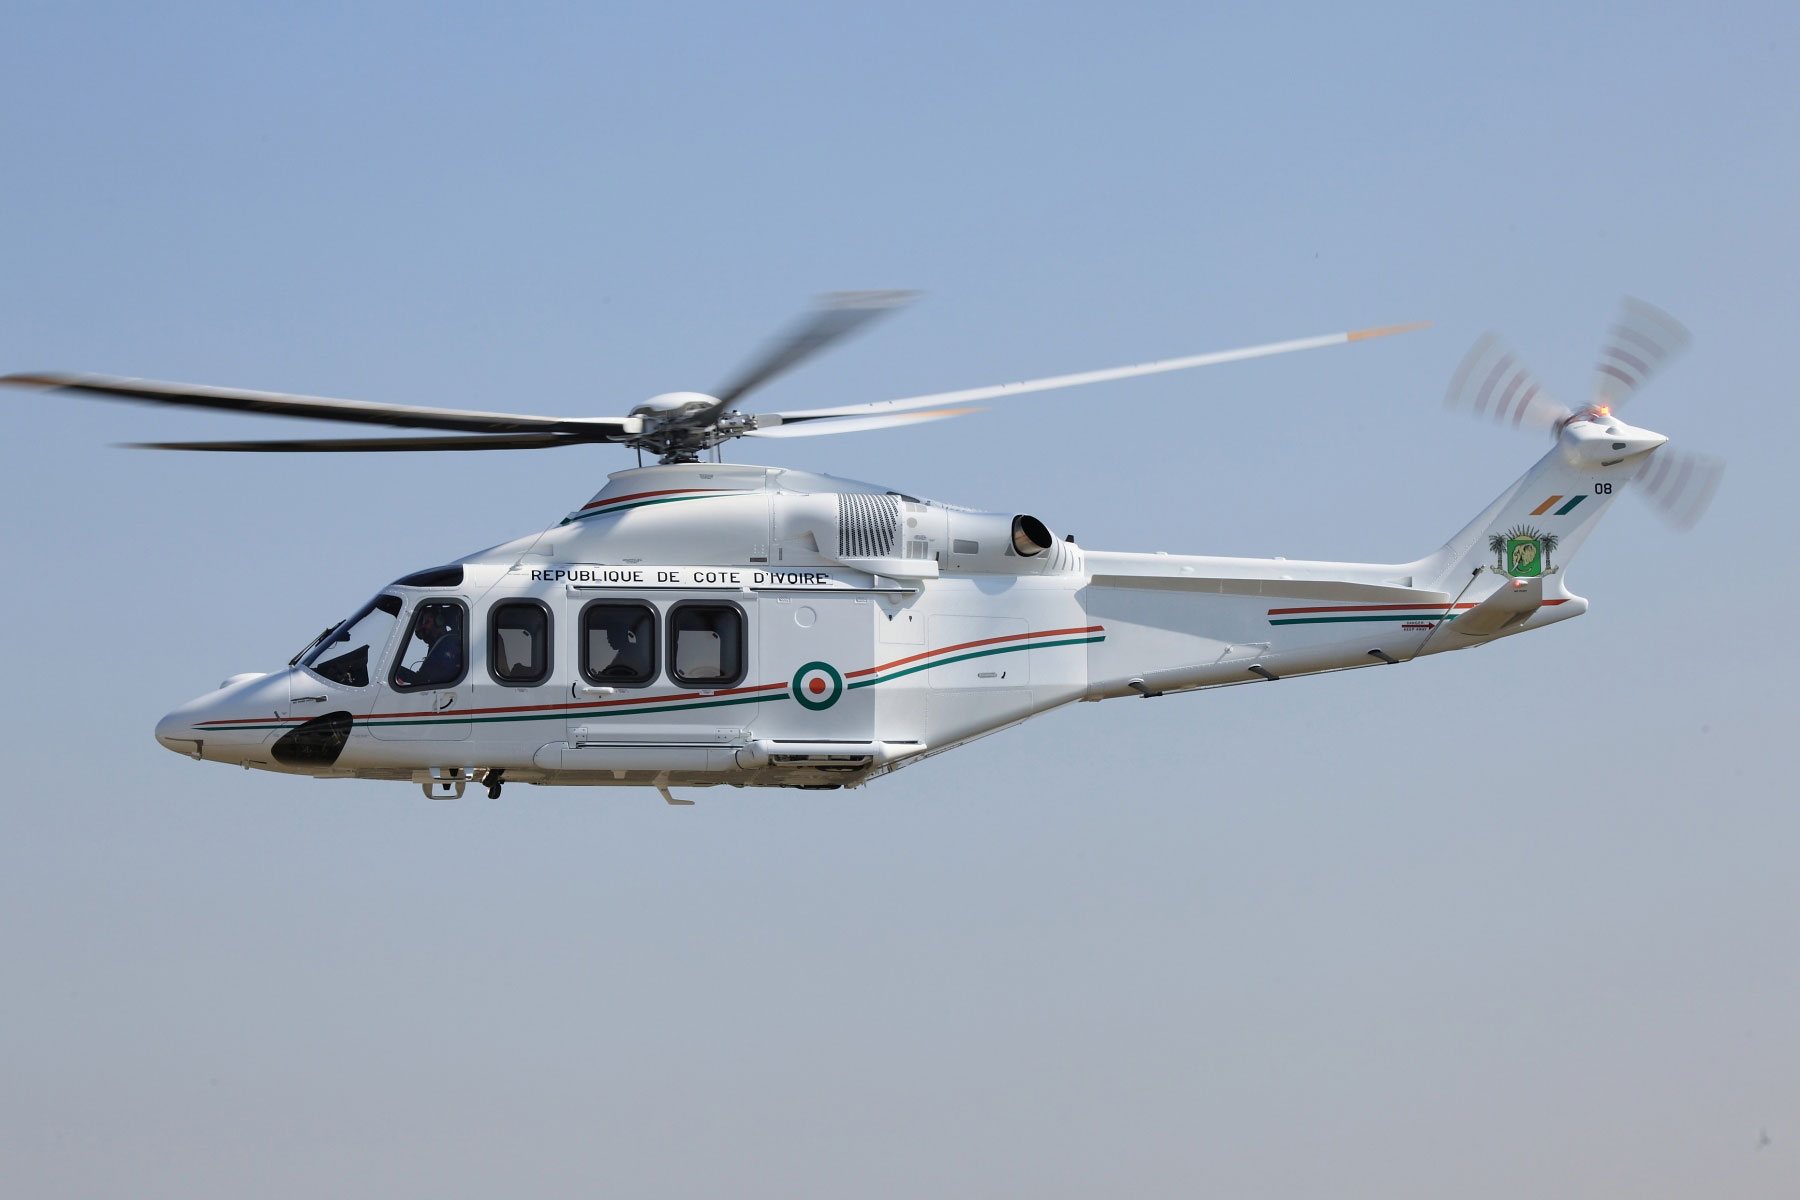 helicopter charter service with Agustawestland Delivers Aw139 Ivory Coast on Lady Lola 12277 moreover 1532522 likewise I 8190334 Charter A Helicopter To Staples Center Los Angeles likewise Kamov Working Naval Alligator likewise Helikoptertyper Leie Turer Privat Firma.